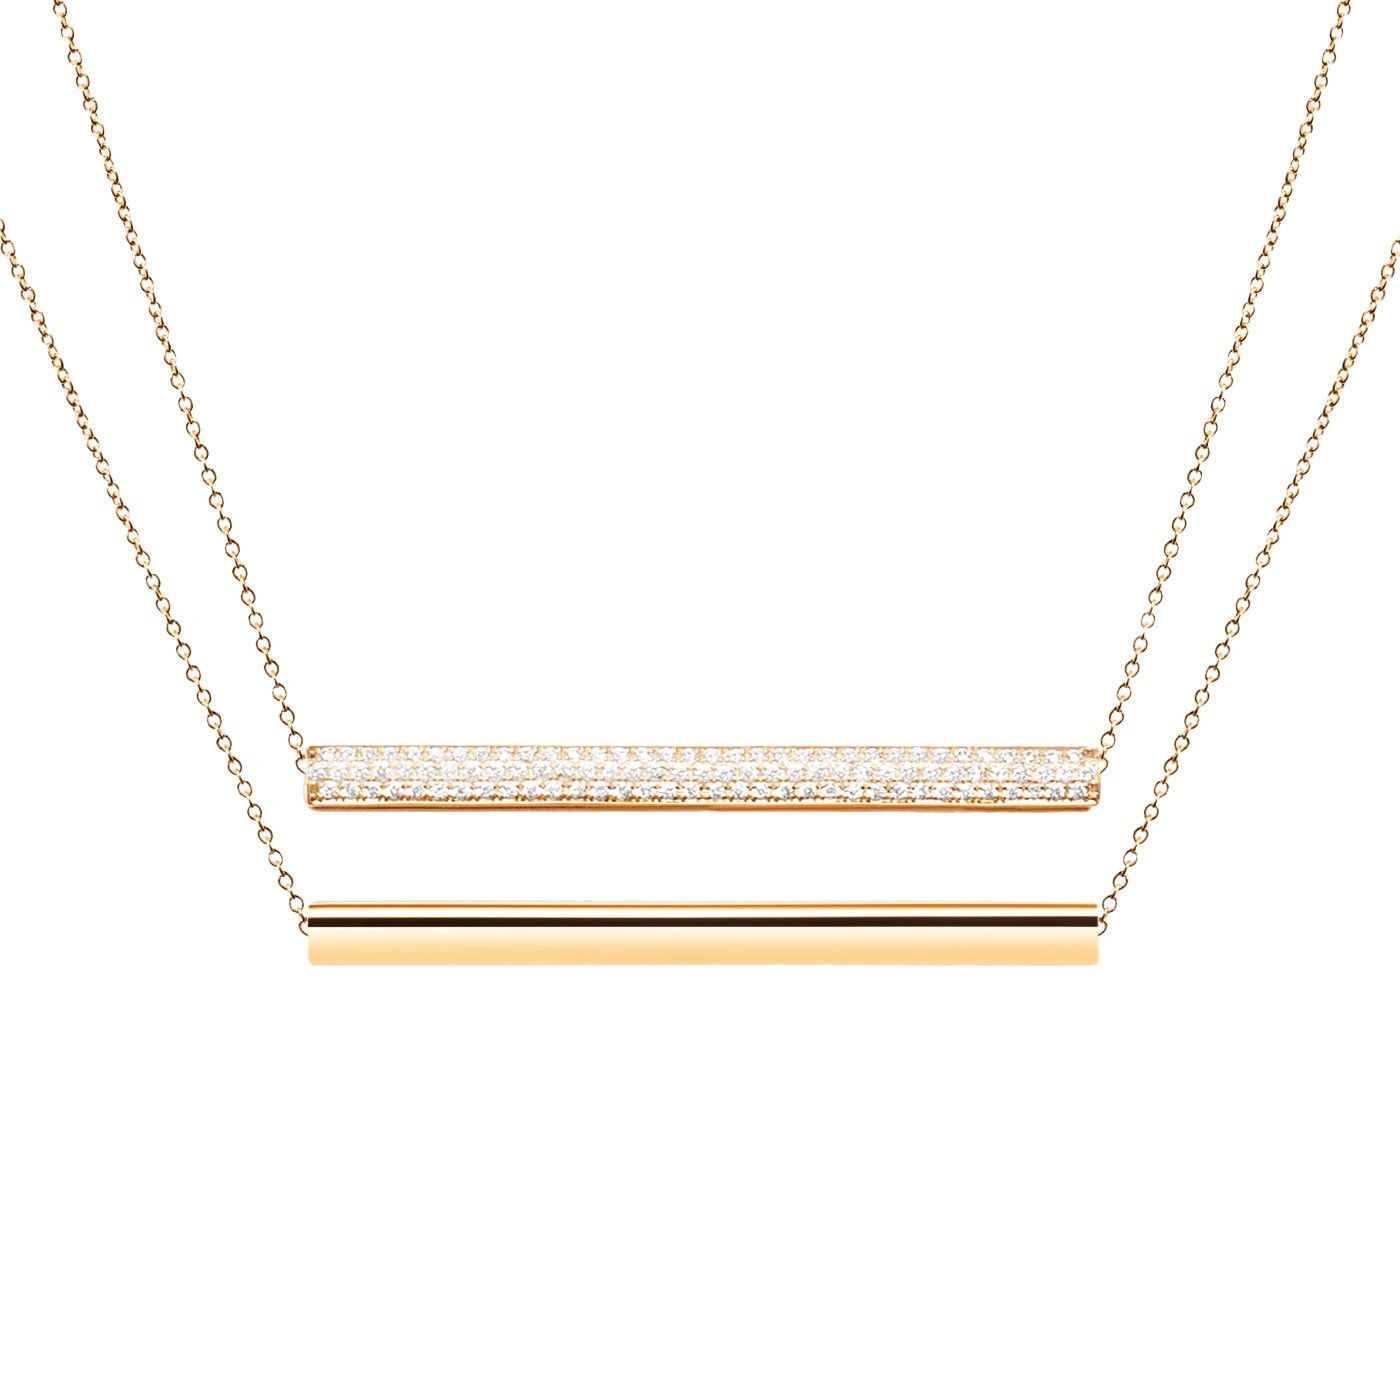 #MelissaKayeJewelry Ellie #necklace in #18k yellow #gold with #diamonds #jewelry #finejewelry #yellowgold #fashion #style